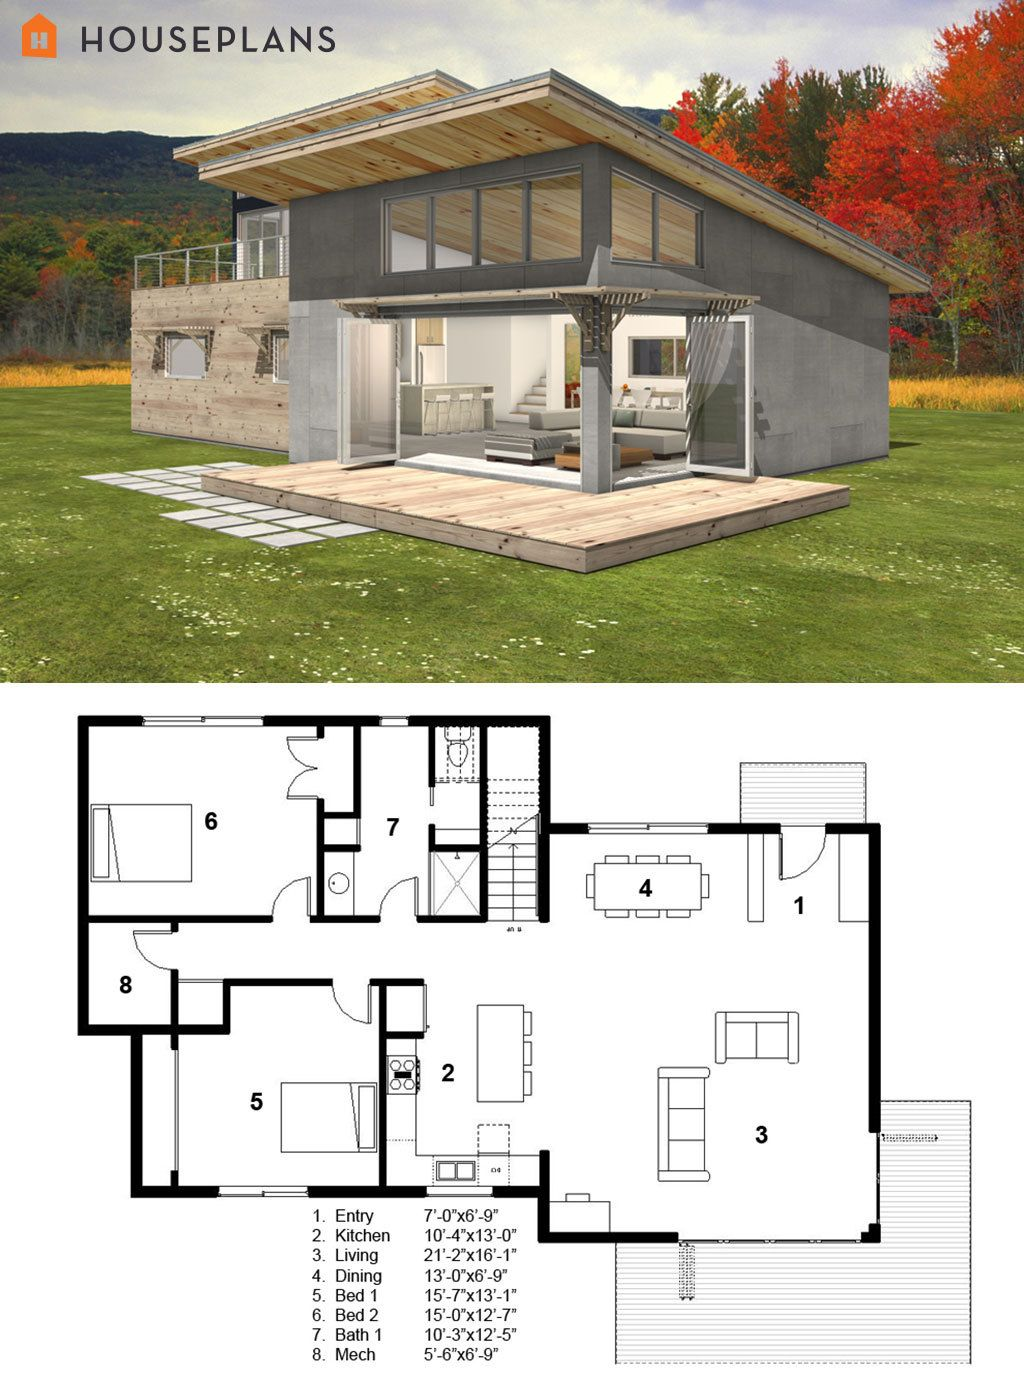 Small modern cabin house plan by freegreen energy Small modern home floor plans